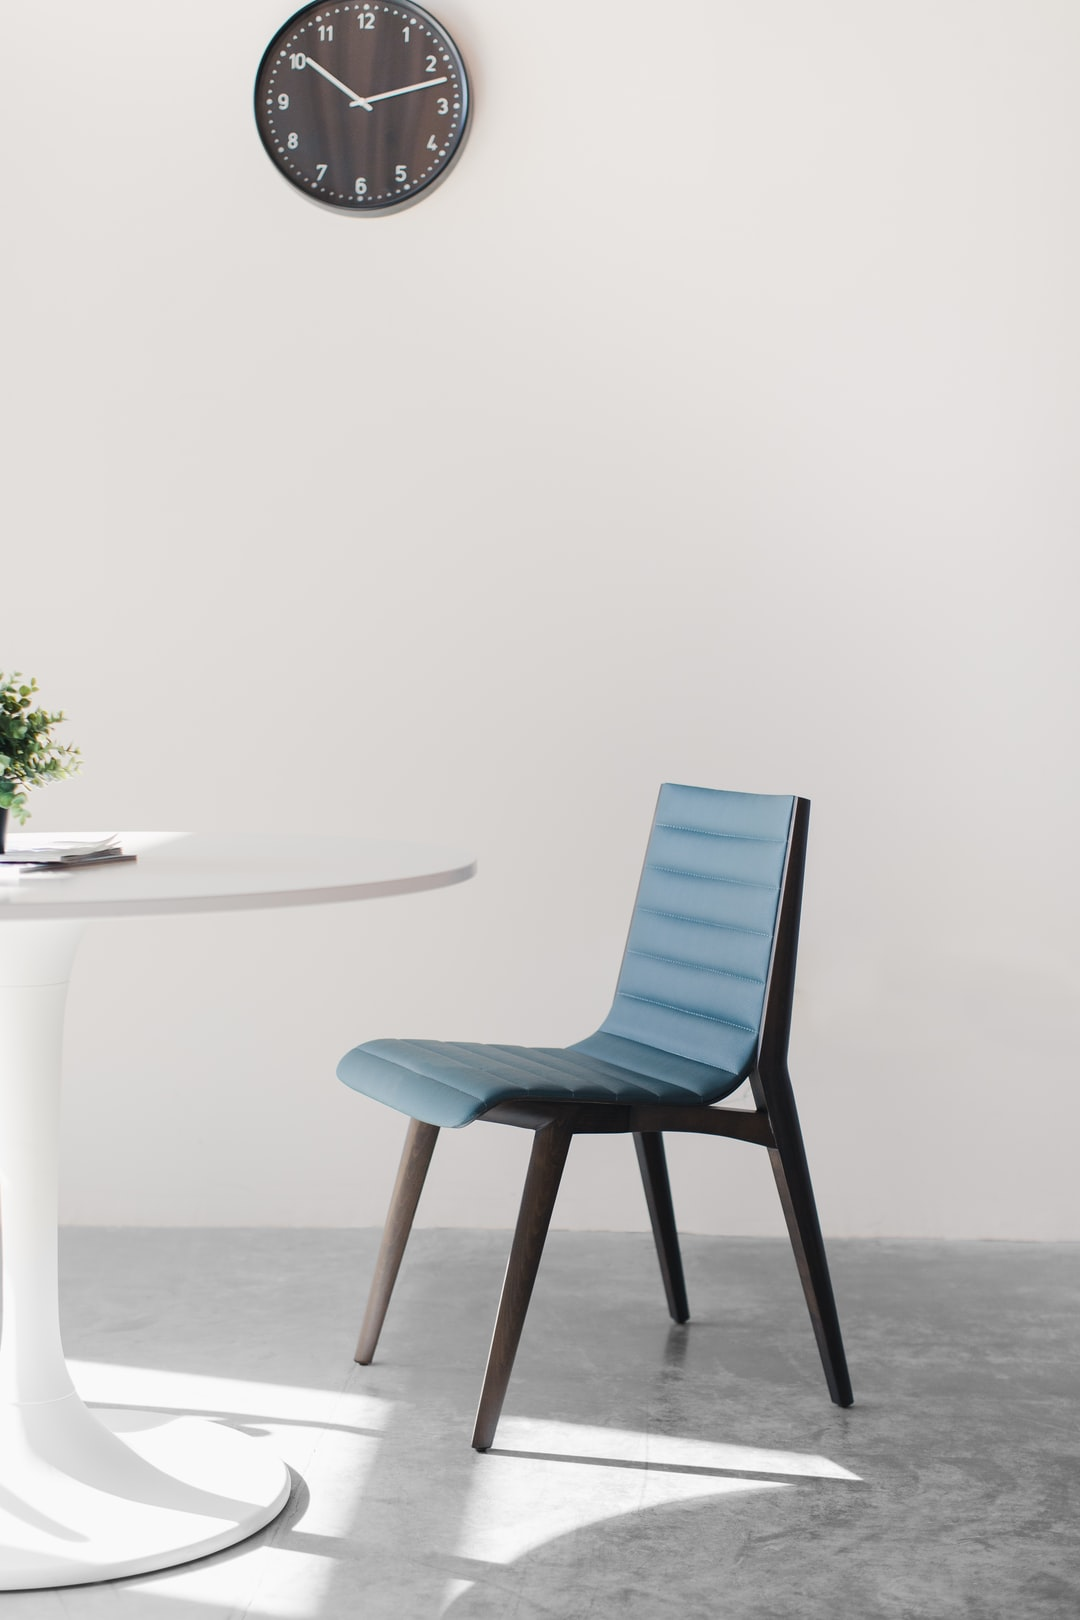 A ribbed mid century modern chair in a brightly lit, minimalist cafe.